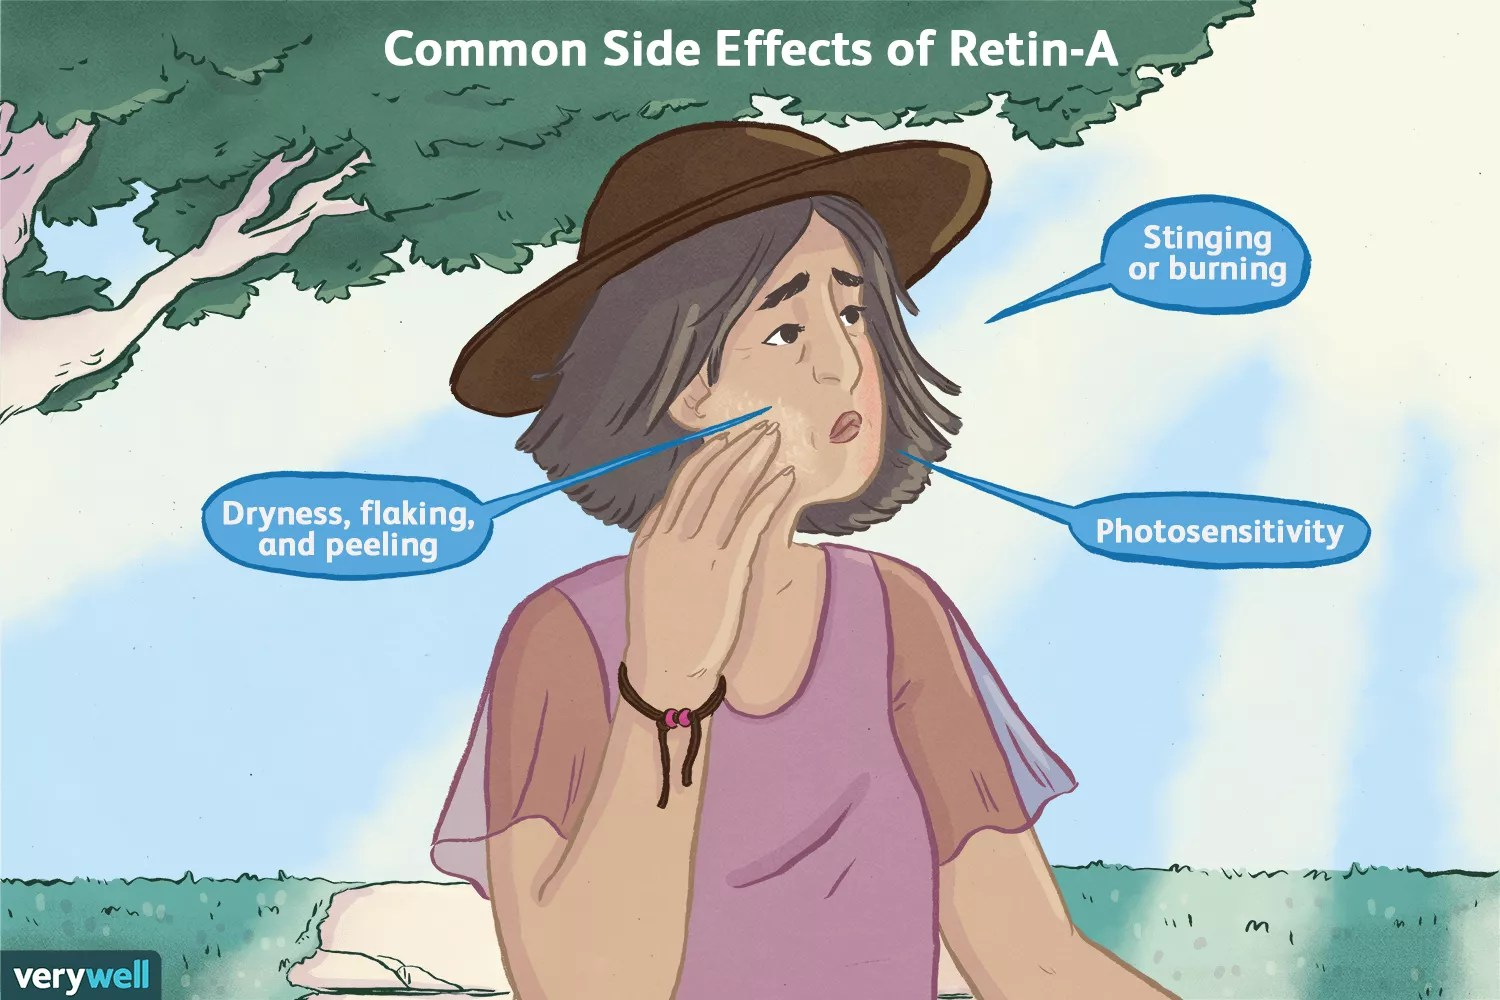 Common Side Effects of Retin-A